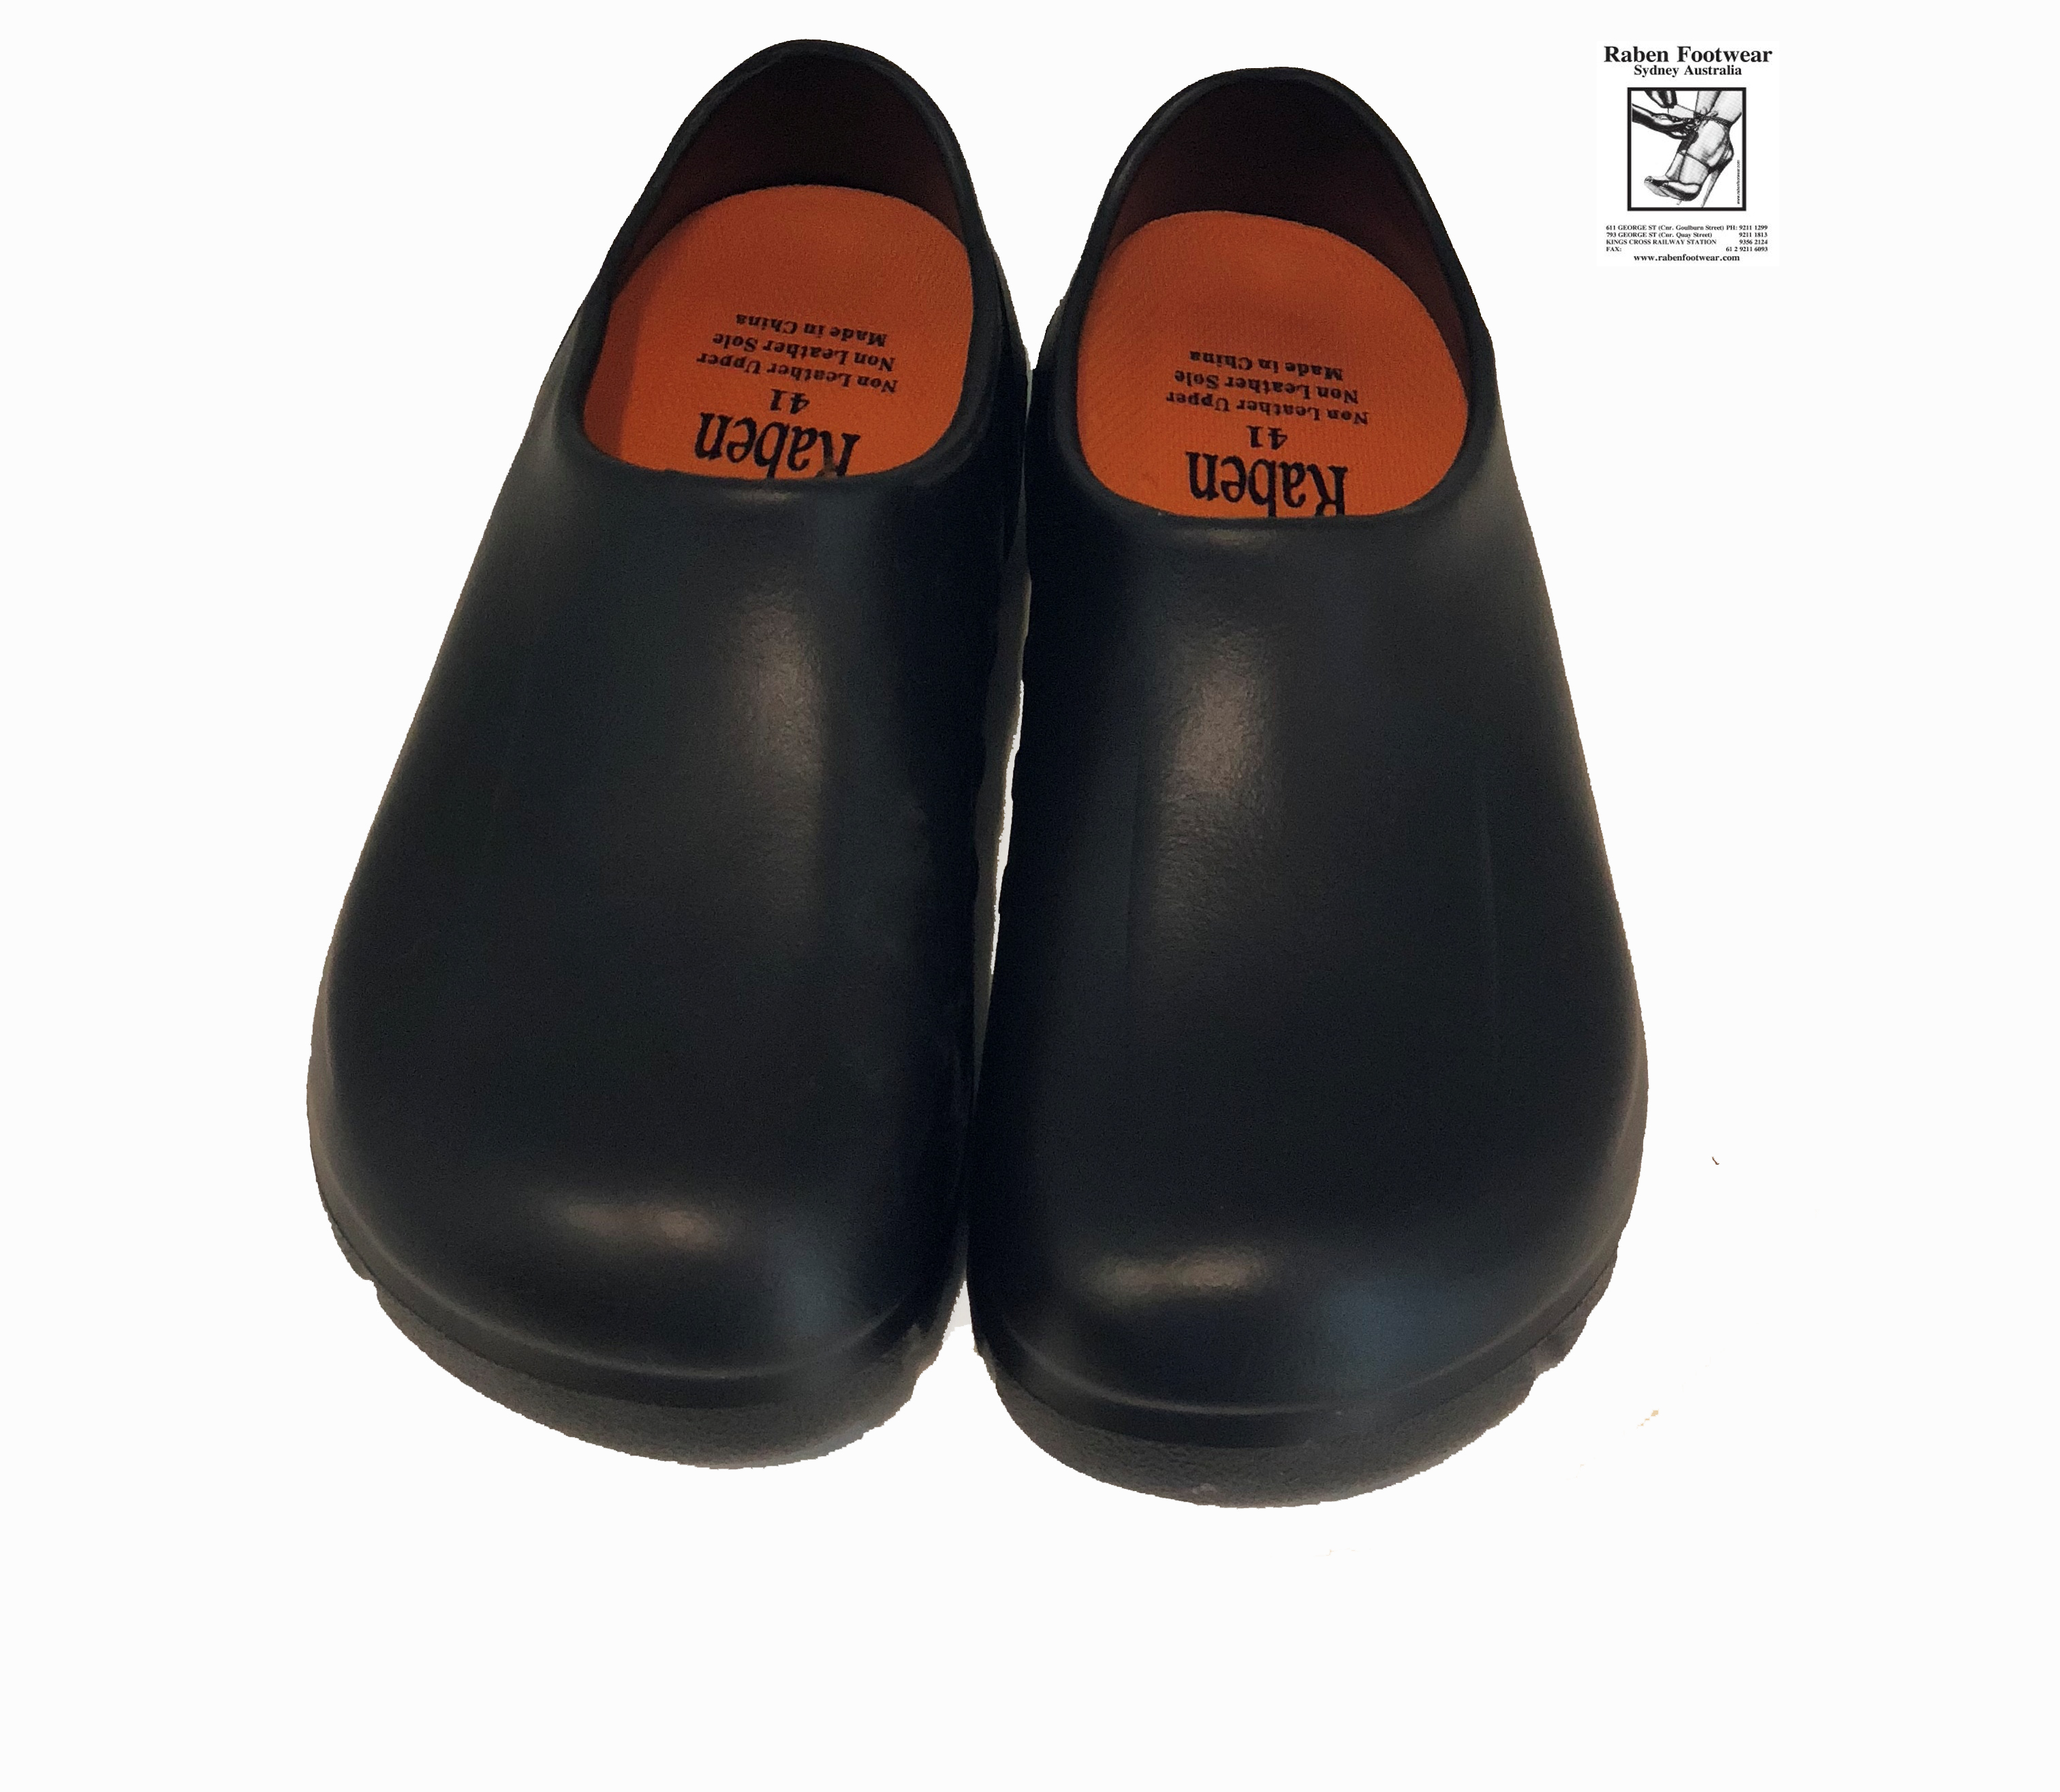 kitchen shoes for men small white sinks footwear ladies mens raben